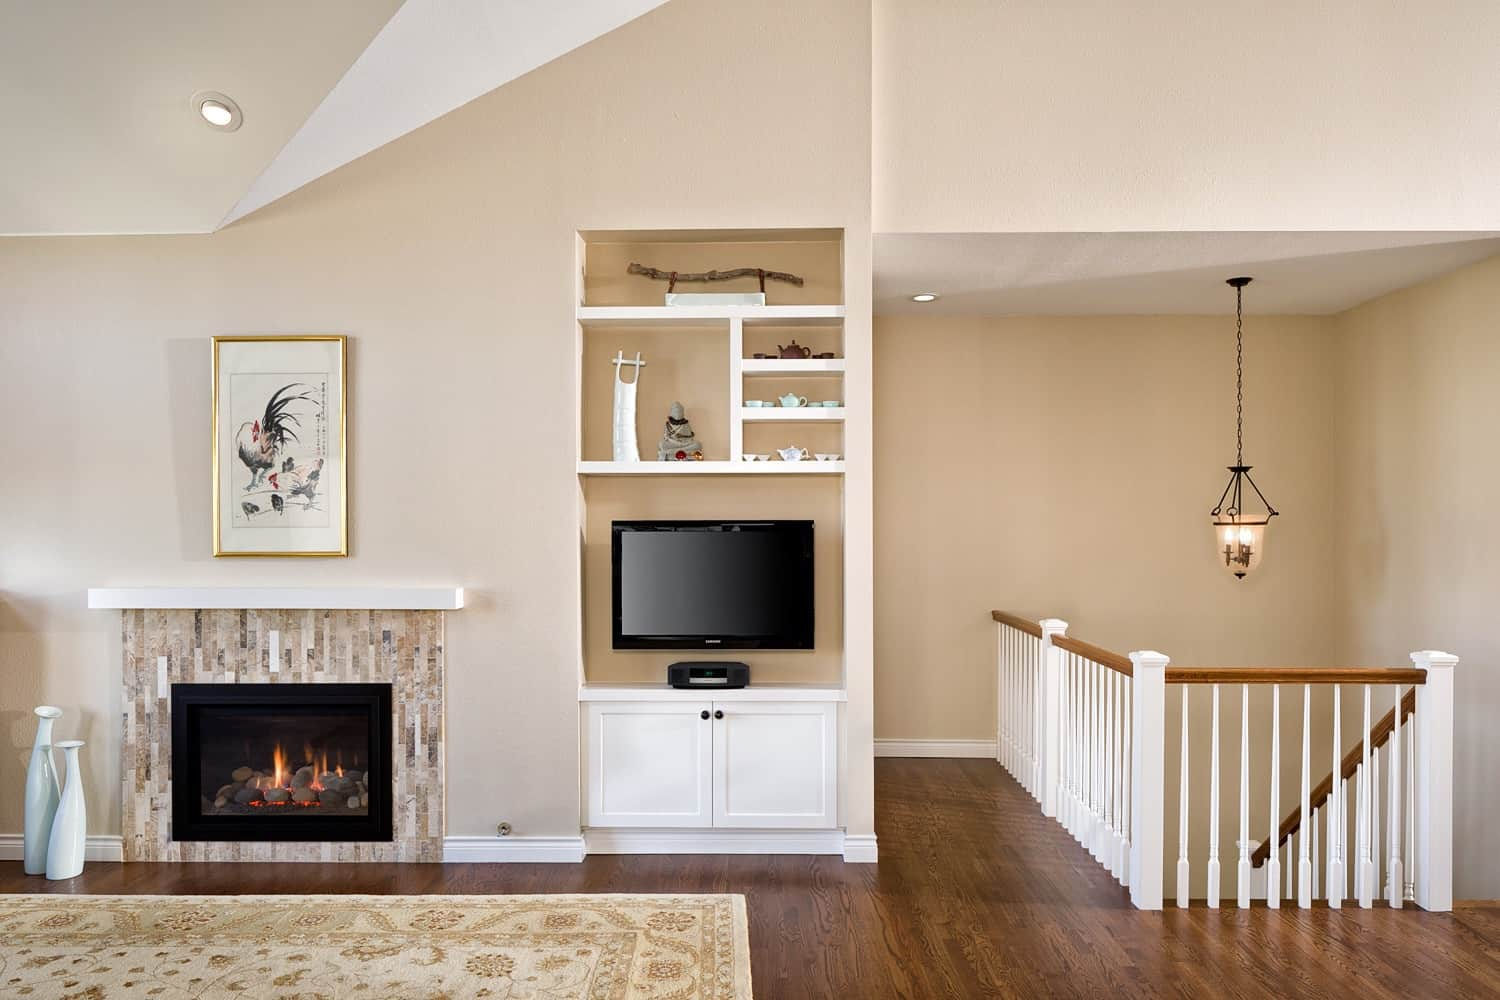 Melton Design Build - Louisville Remodel - Living Room Fireplace and Banister